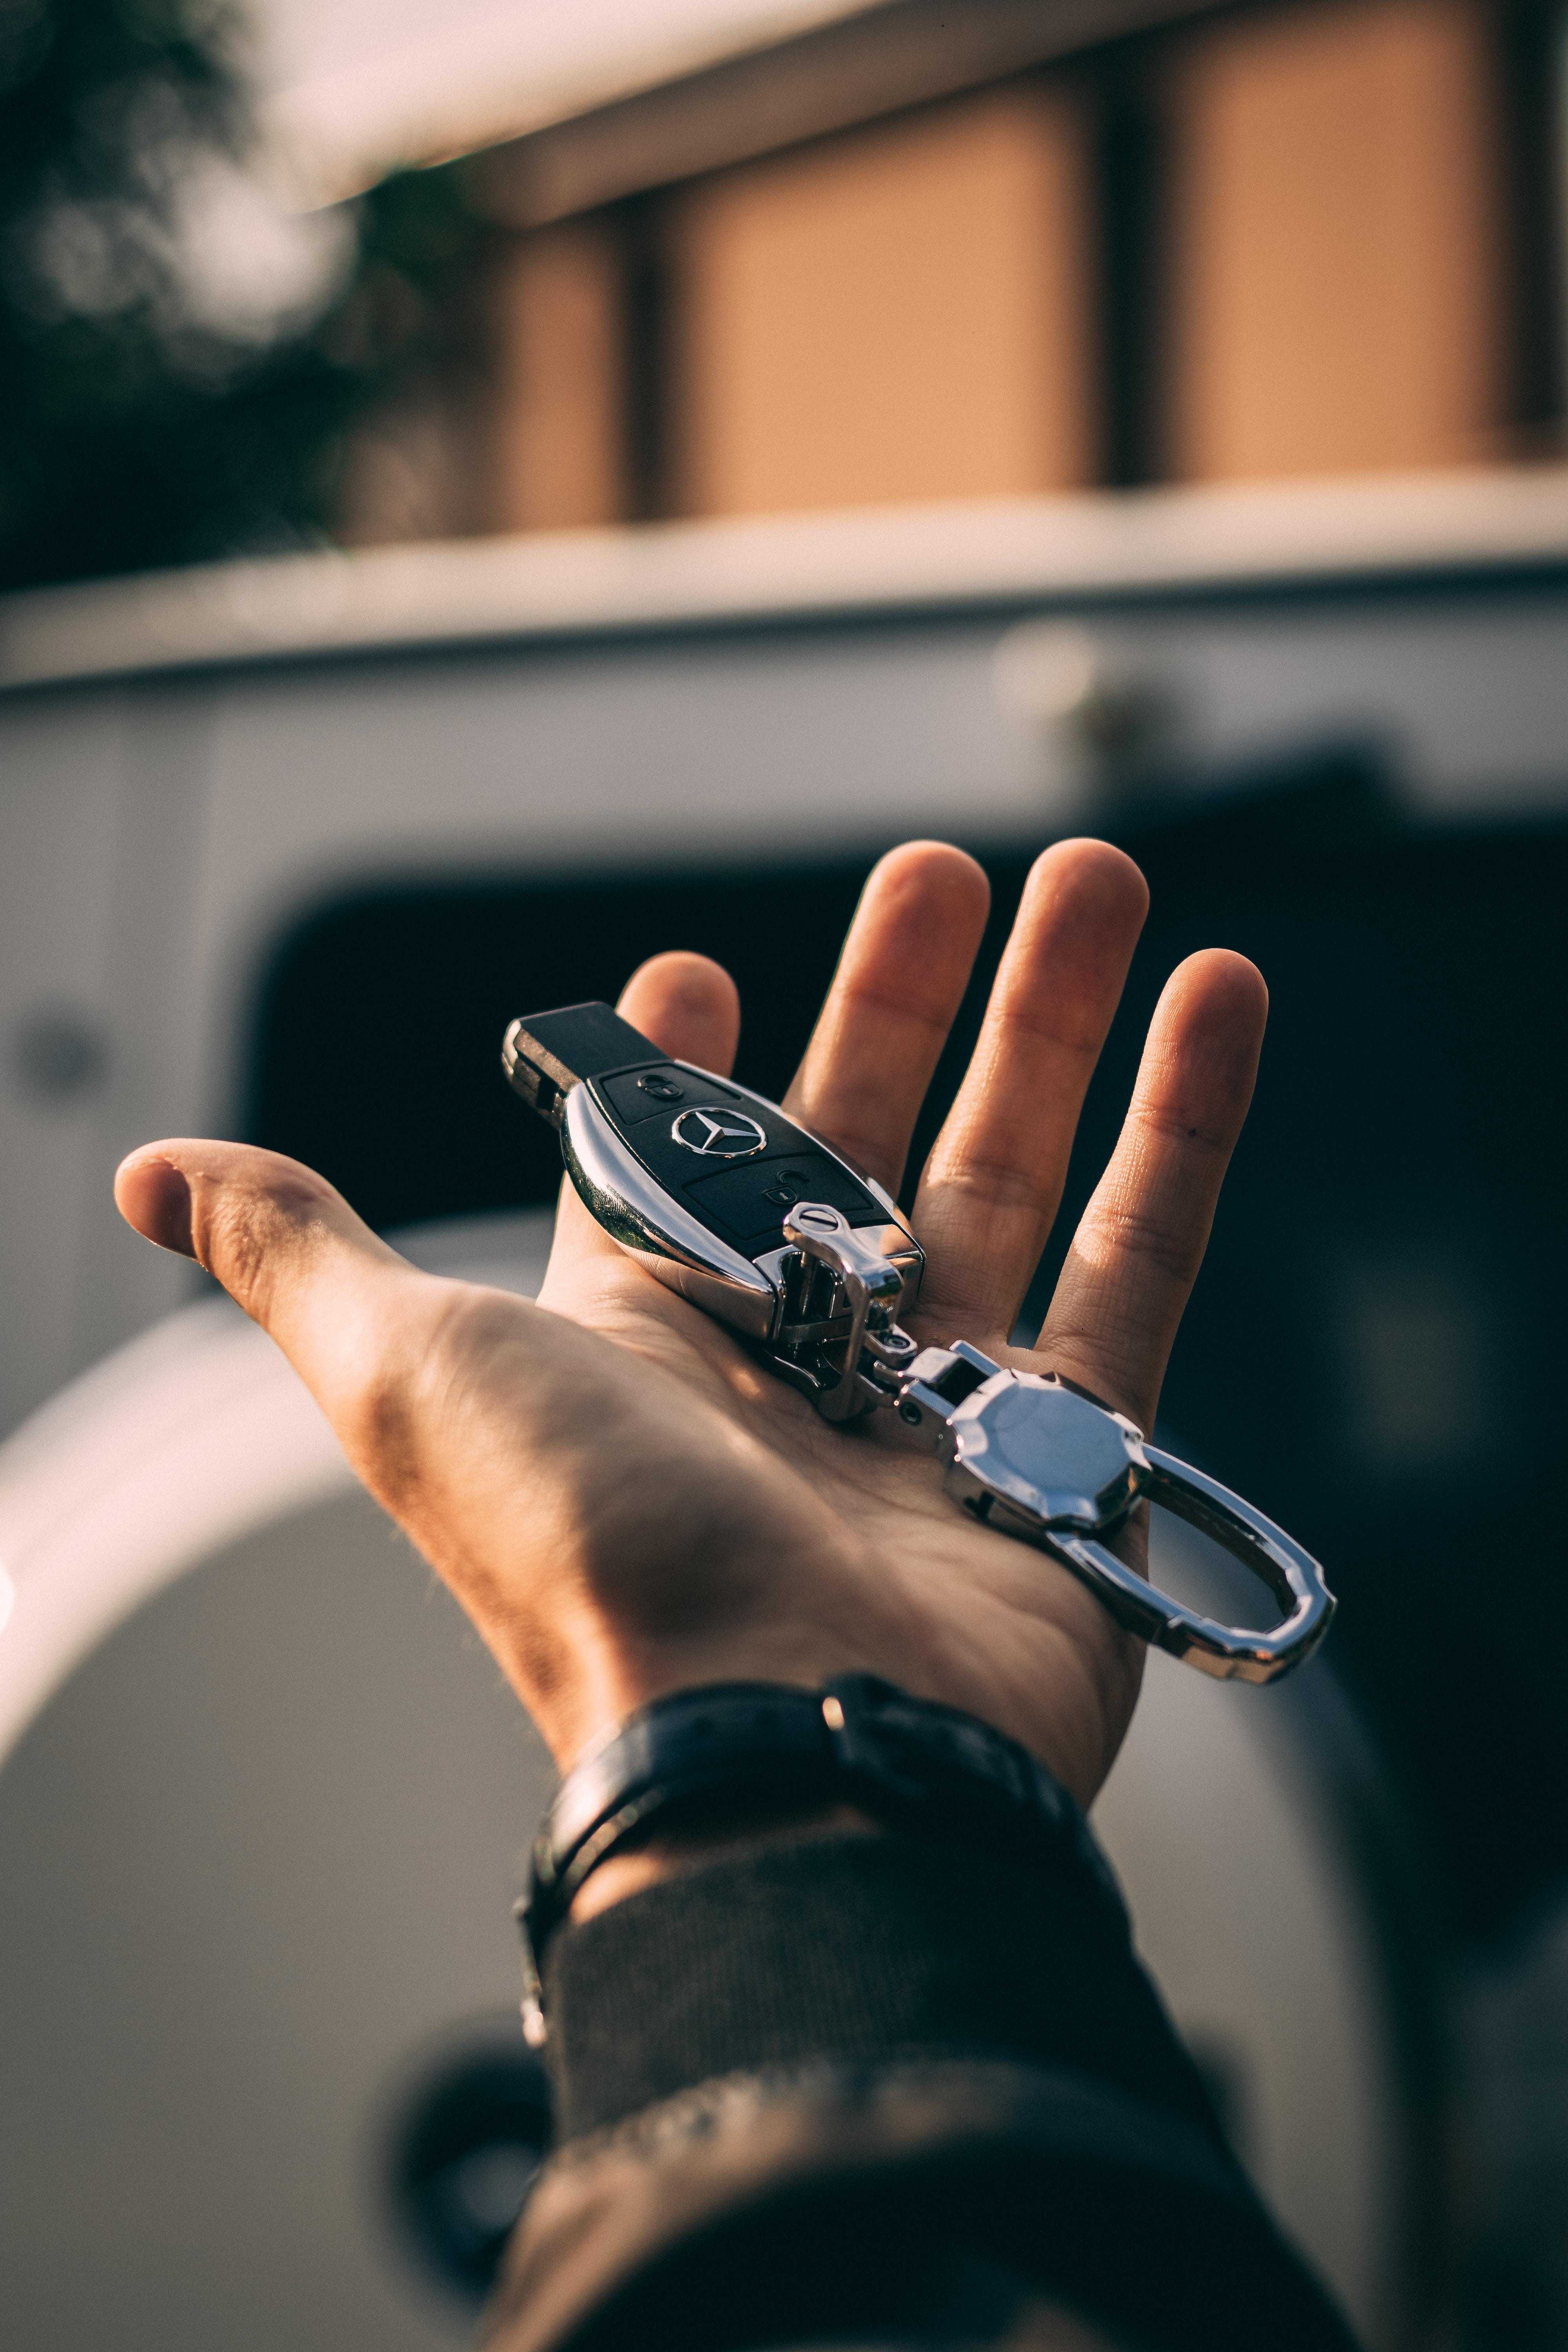 person holding Mercedes-Benz fob